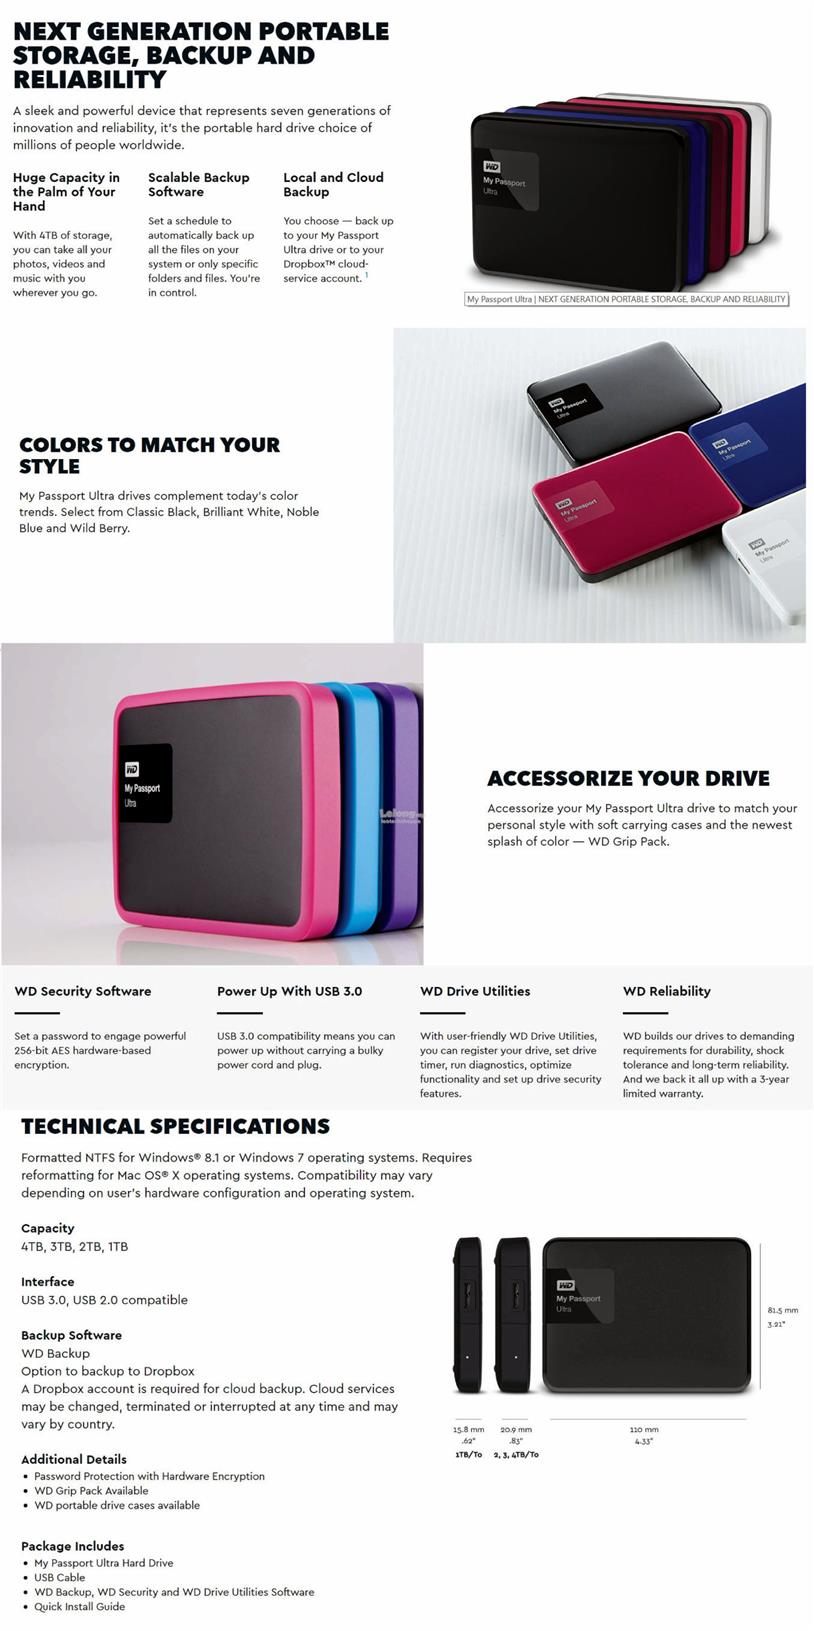 WD MY PASSPORT ULTRA 2TB (ASSORTED COLORS) EXTERNAL PORTABLE HARDDISK